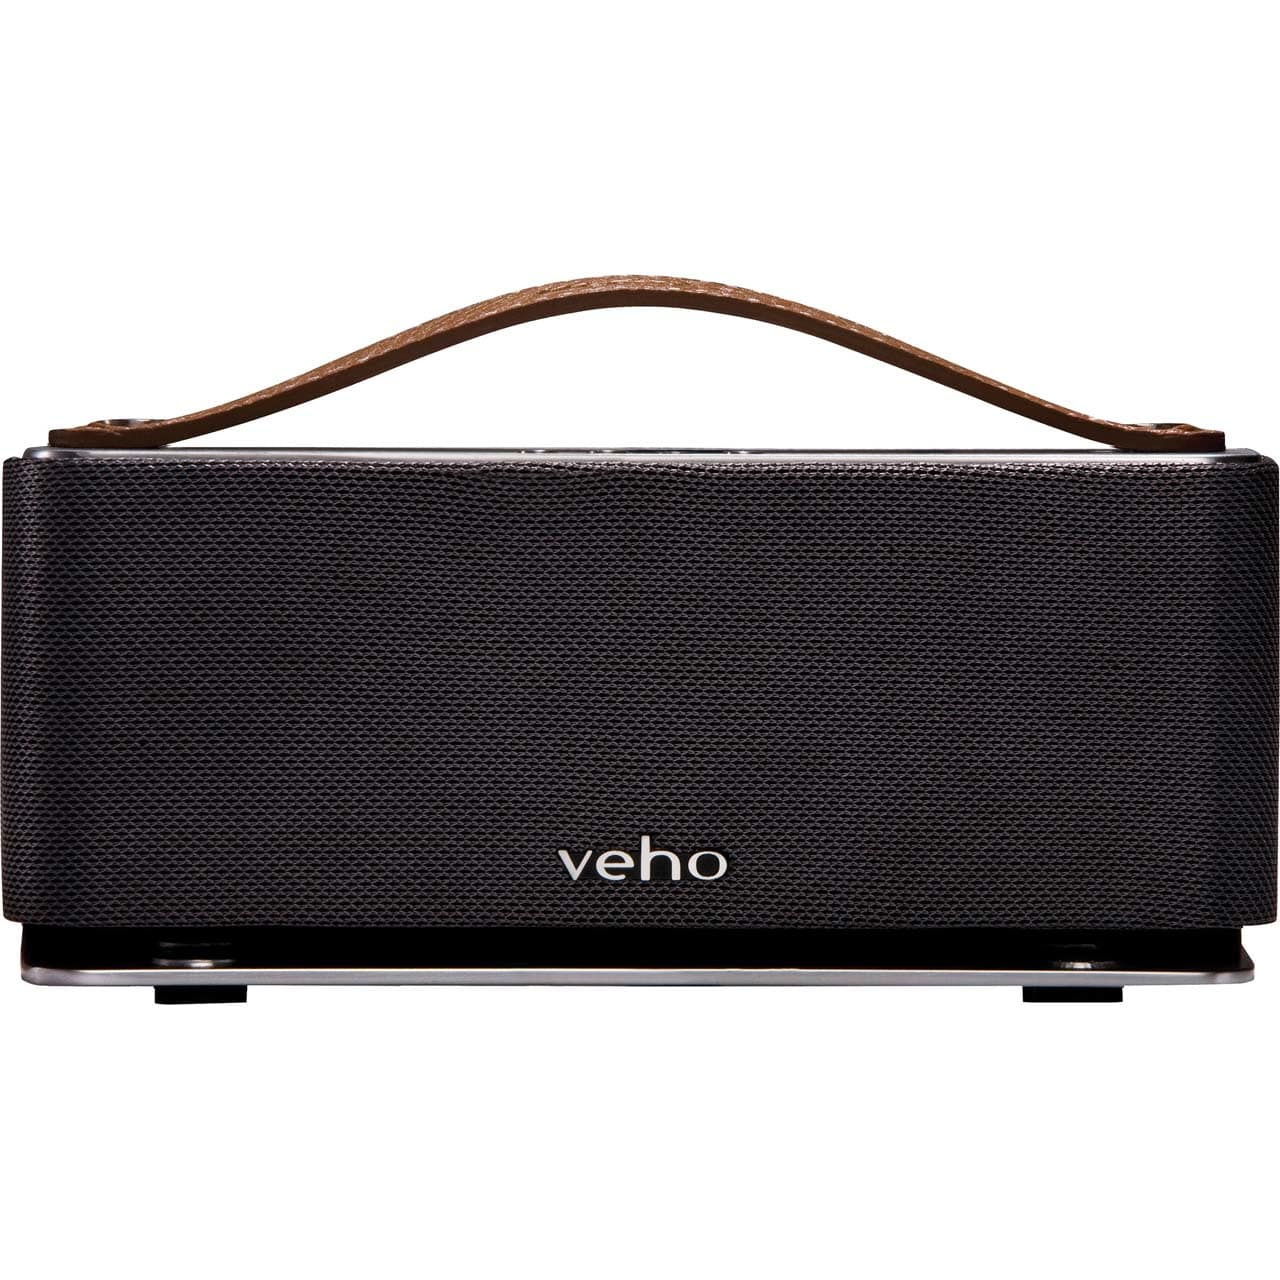 Image for Veho 360 M-6 Mode Retro Powerful Wireless Bluetooth Speaker With Microphone And Track Control from Circuit City